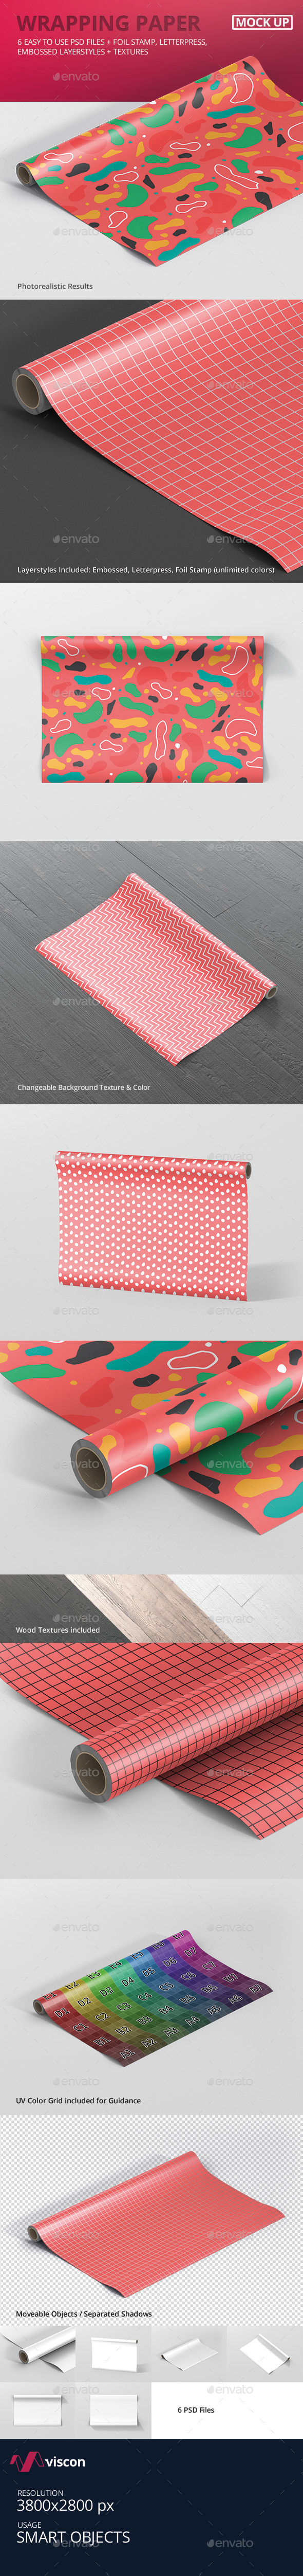 Gift Wrapping Paper Mockup - Miscellaneous Print